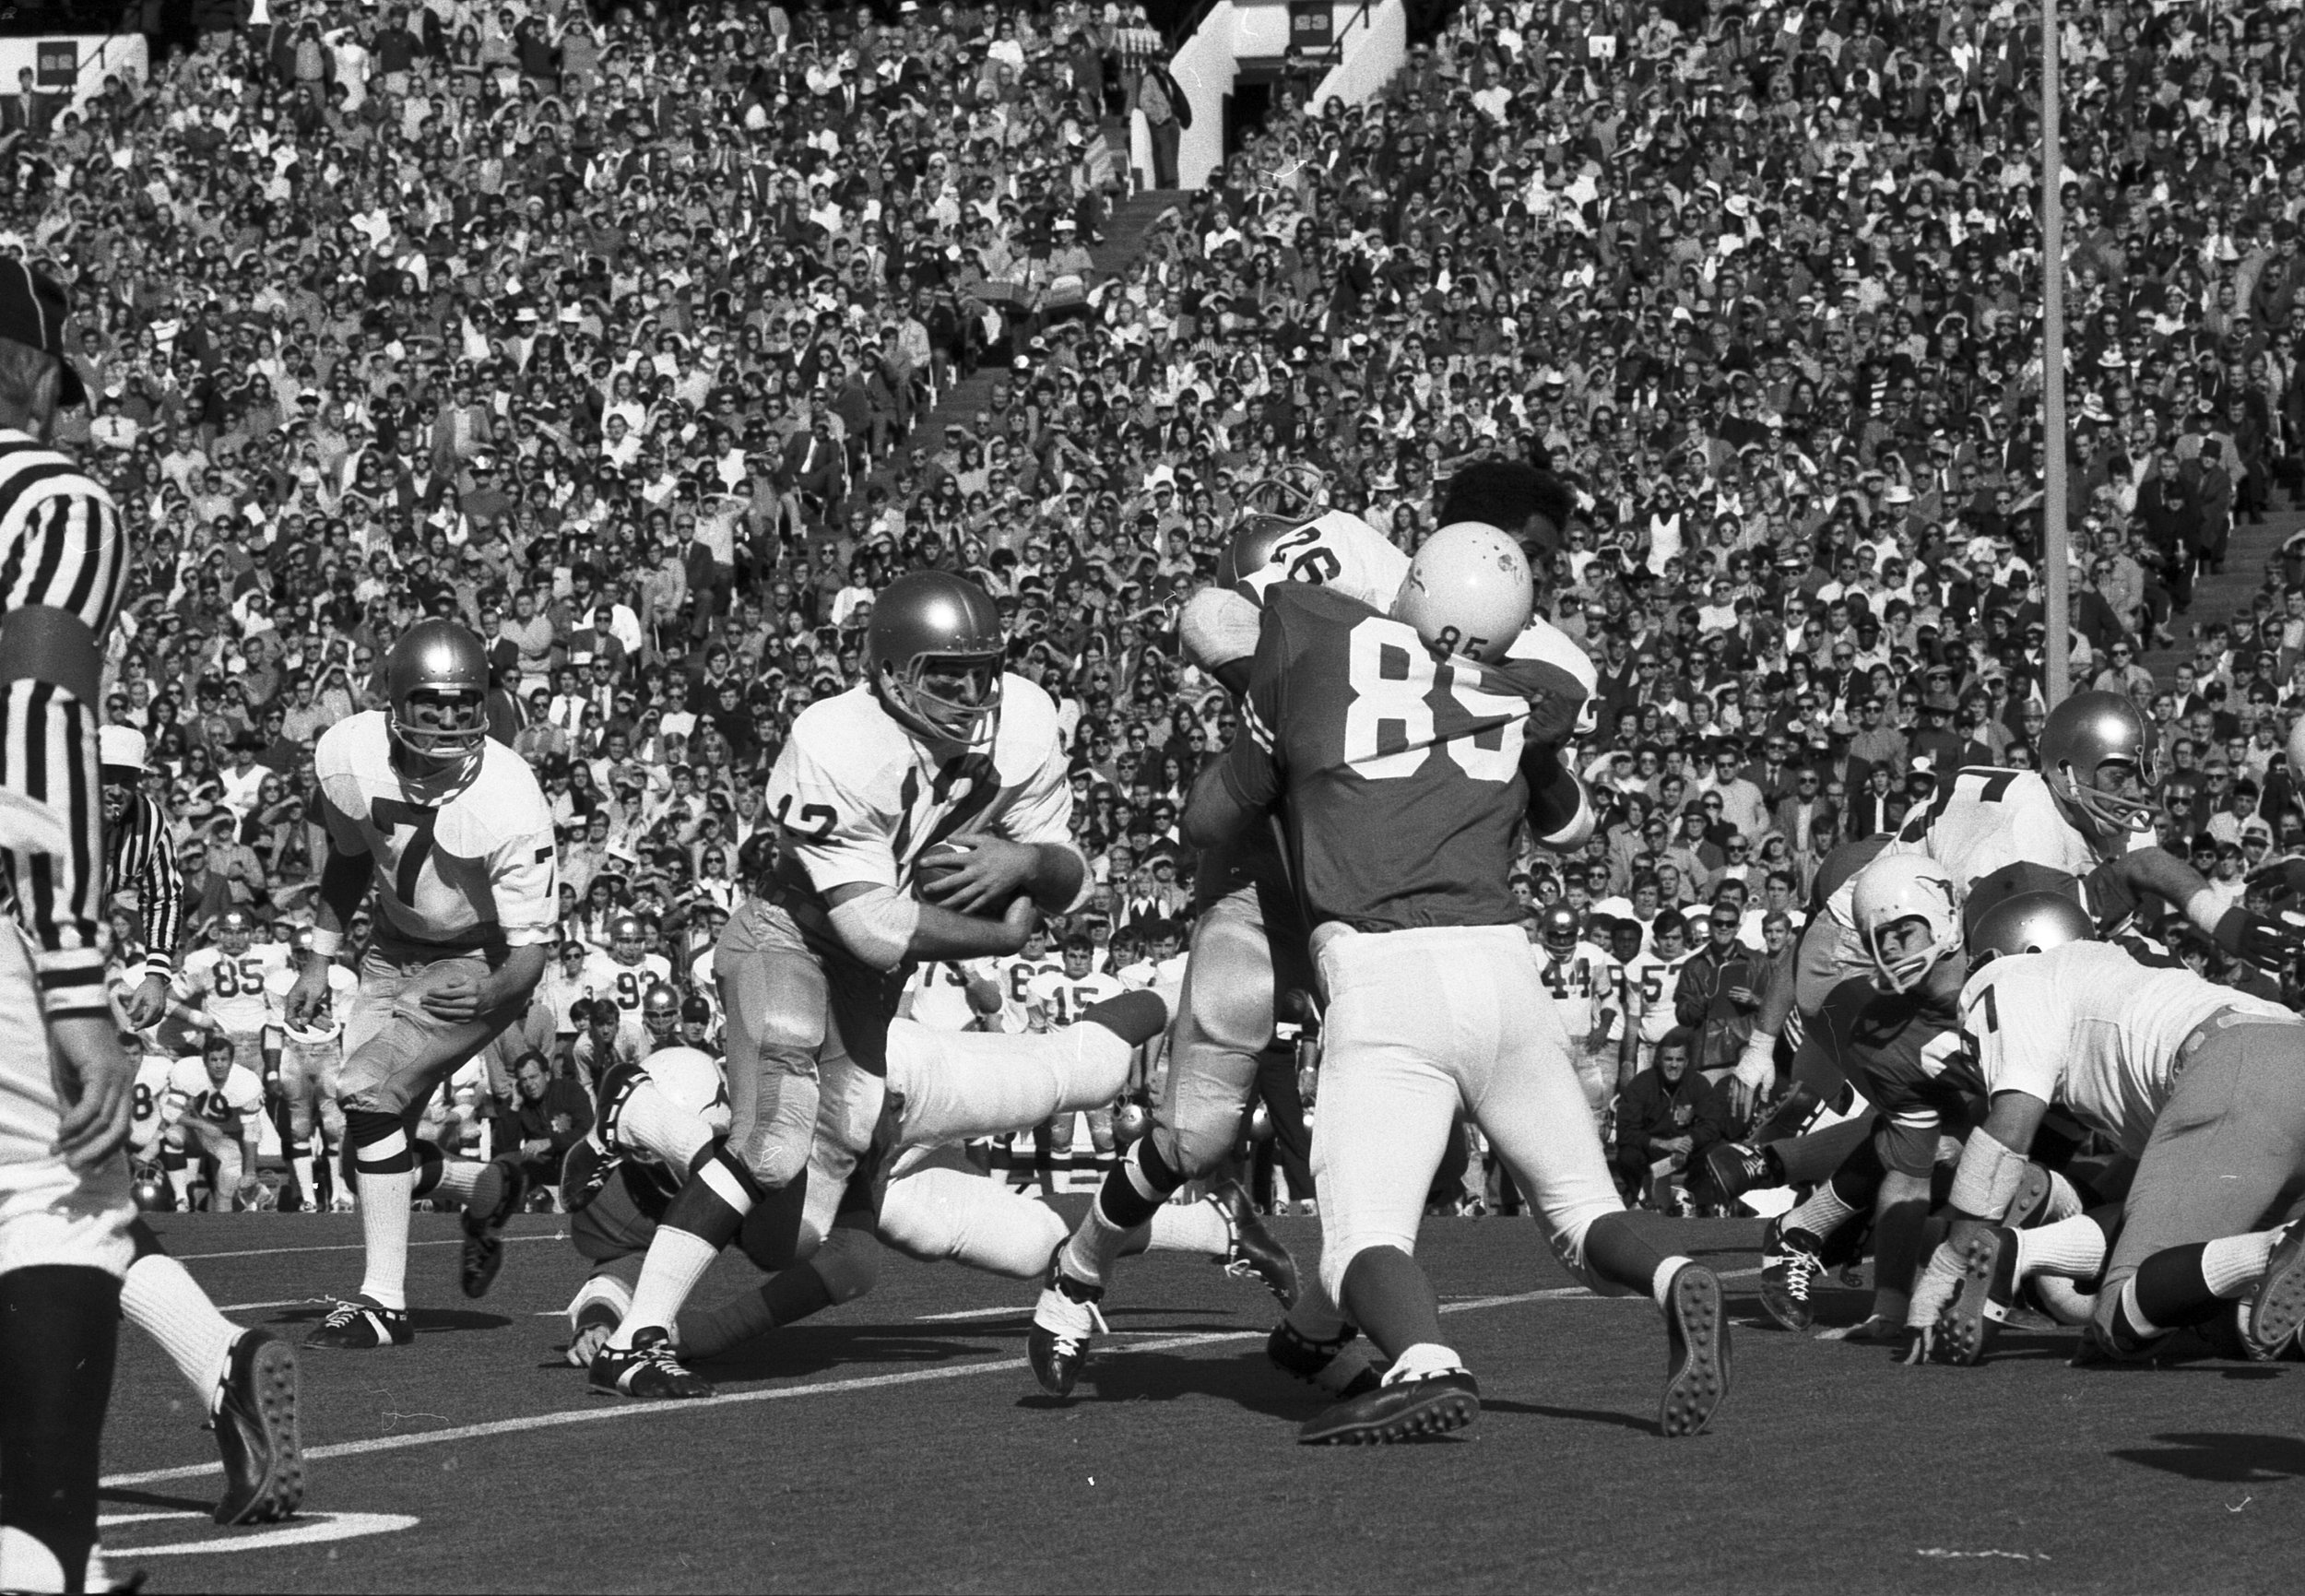 Stan Mauldin #85 knocks the helmet off the Notre Dame blocker. Joe Theisman is #7. Notre Dame Coach Ara Parseghian is squatting down on the Notre Dame sideline by number 44.